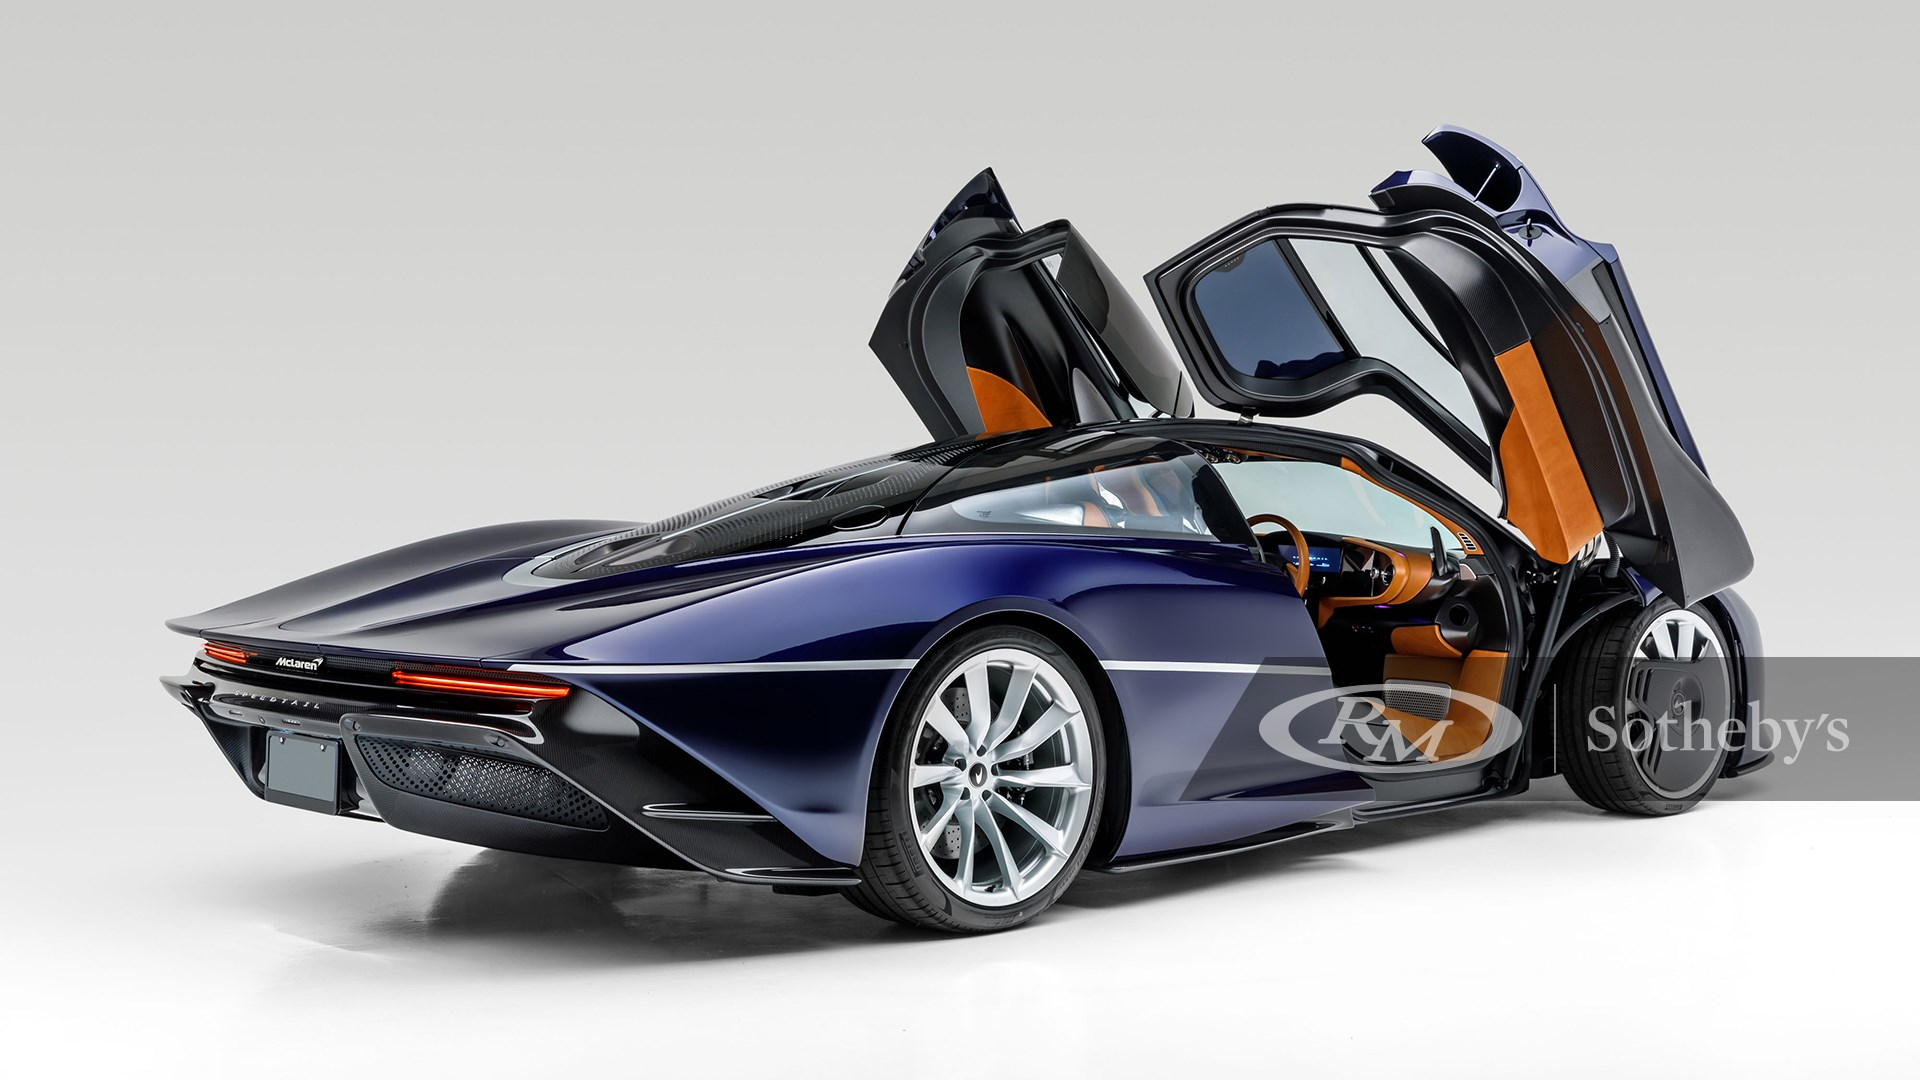 MSO Heritage Atlantic Blue 2020 McLaren Speedtail available at RM Sotheby's Arizona Live Auction 2021